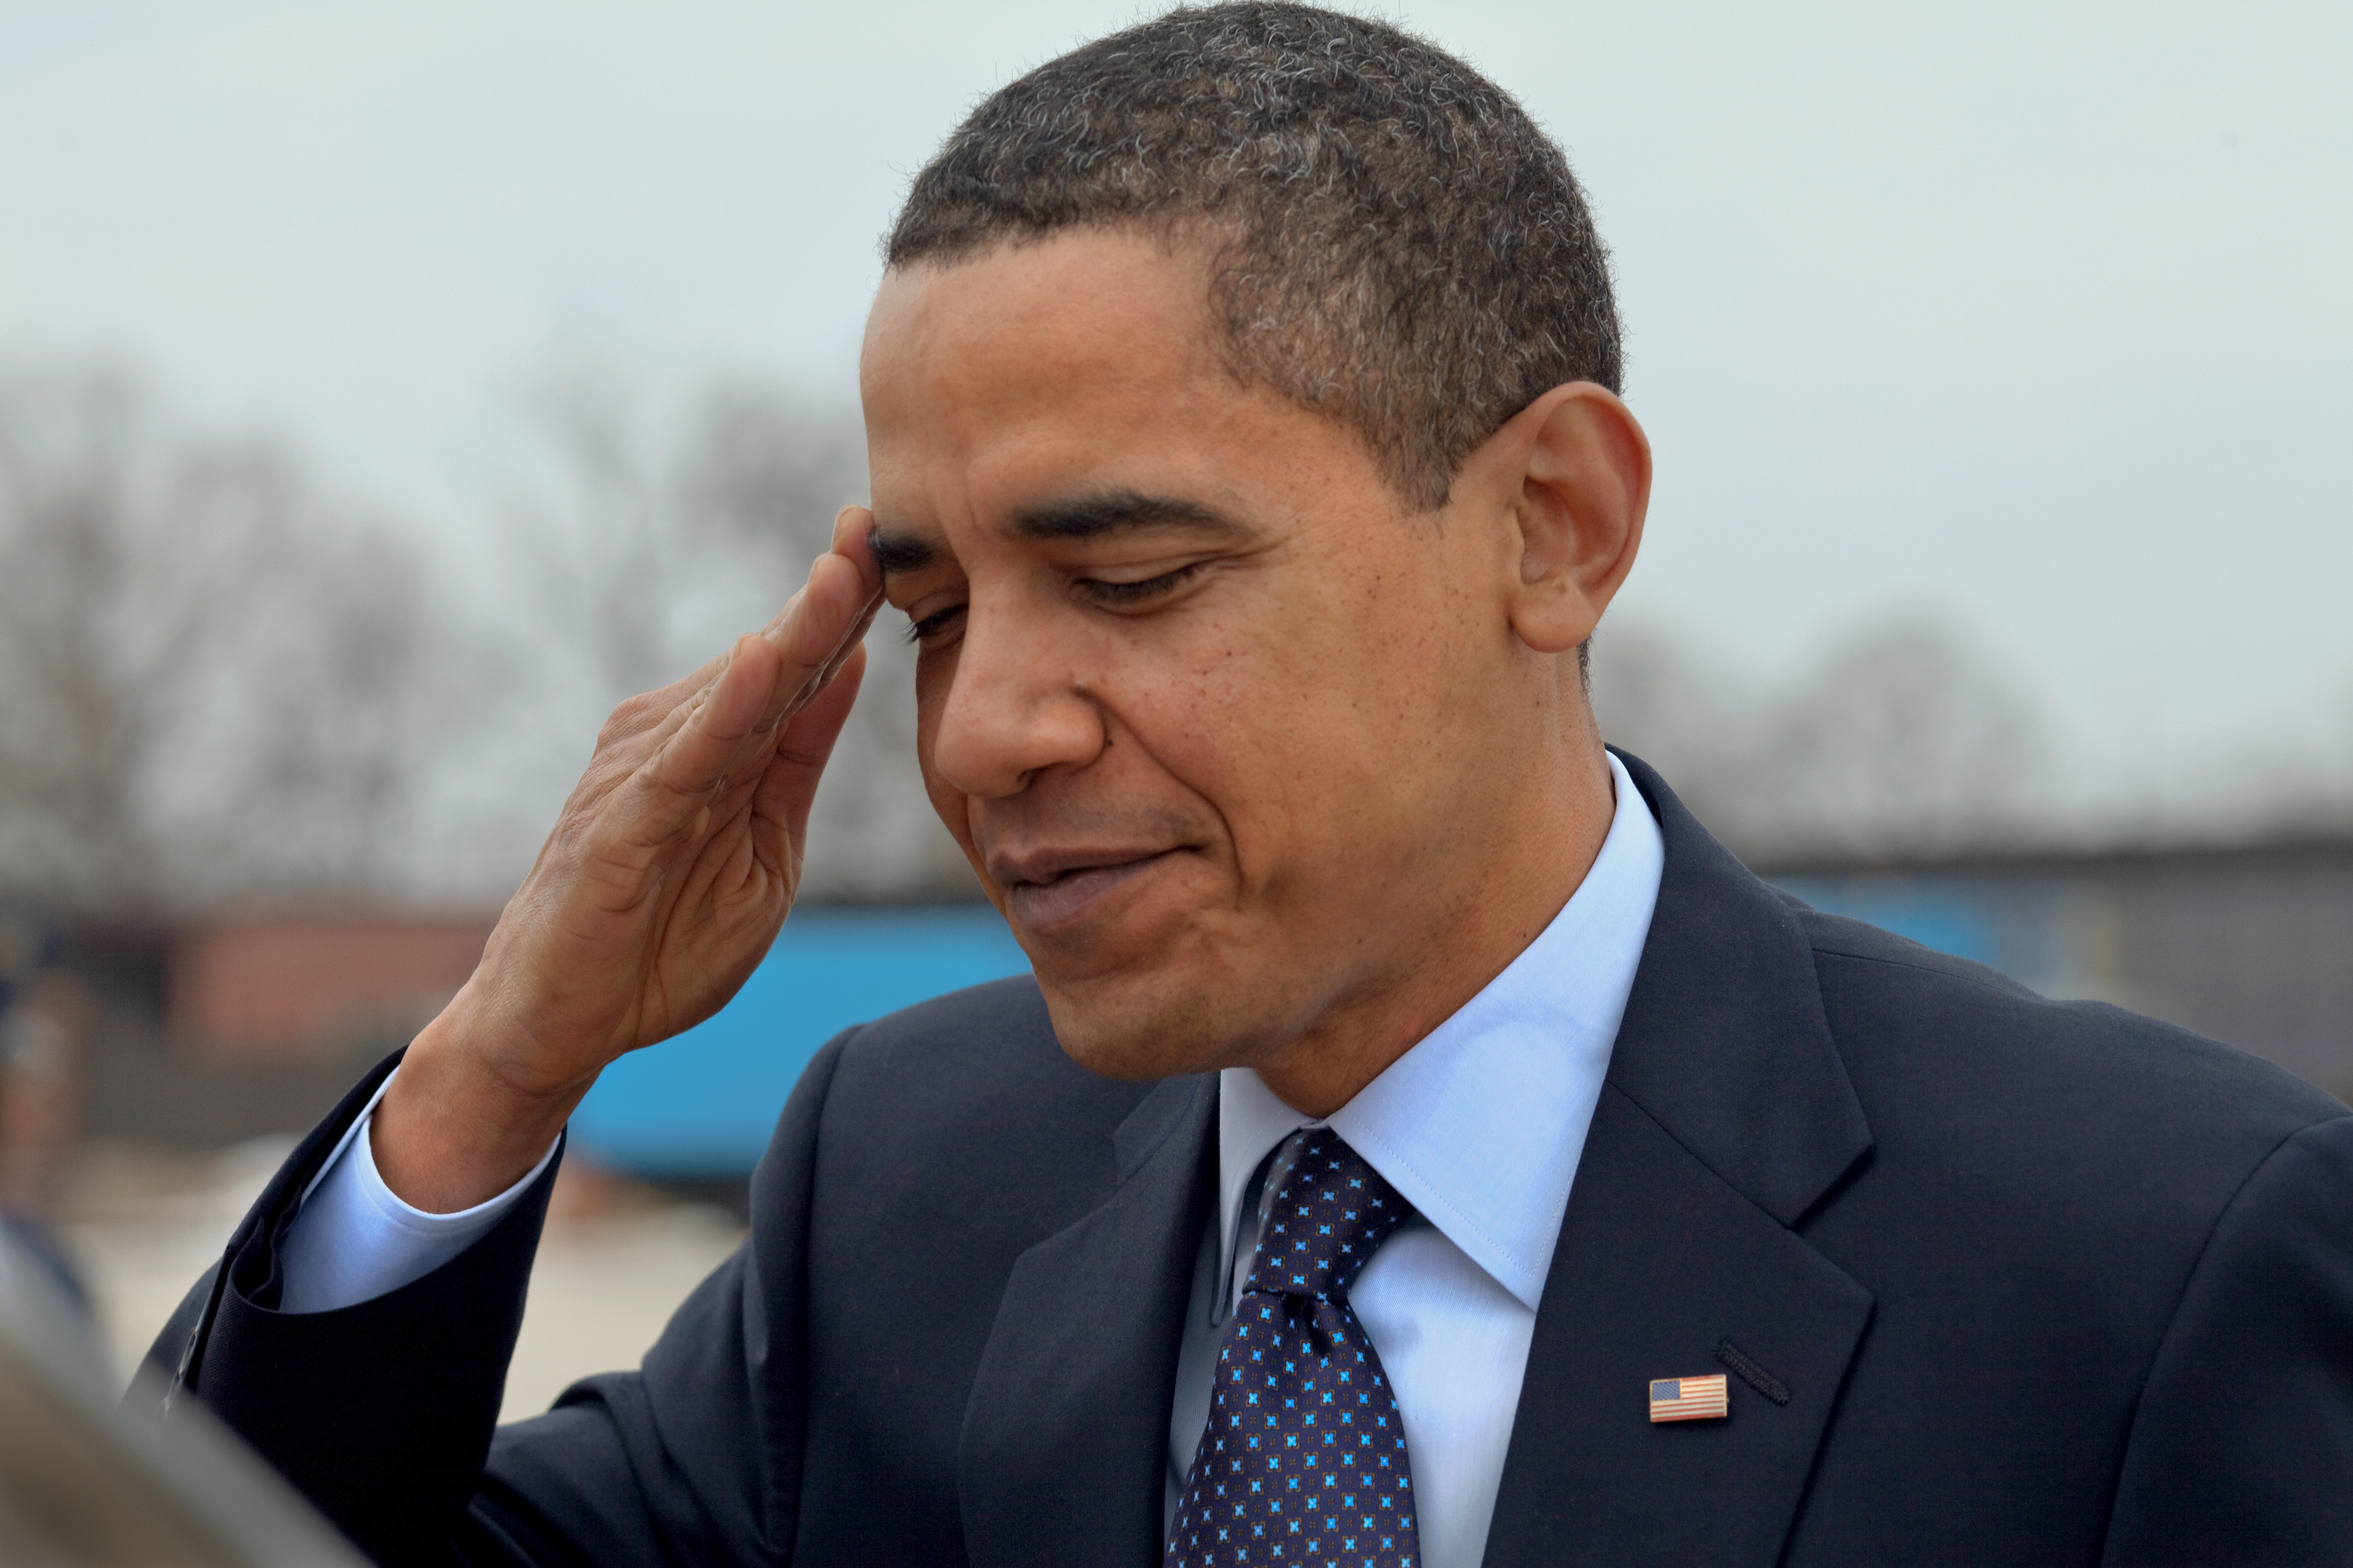 President_Barack_Obama_salutes_at_Andrews_Air_Force_Base_before_departing_for_Columbus,_Ohio.jpg (3500×2333)